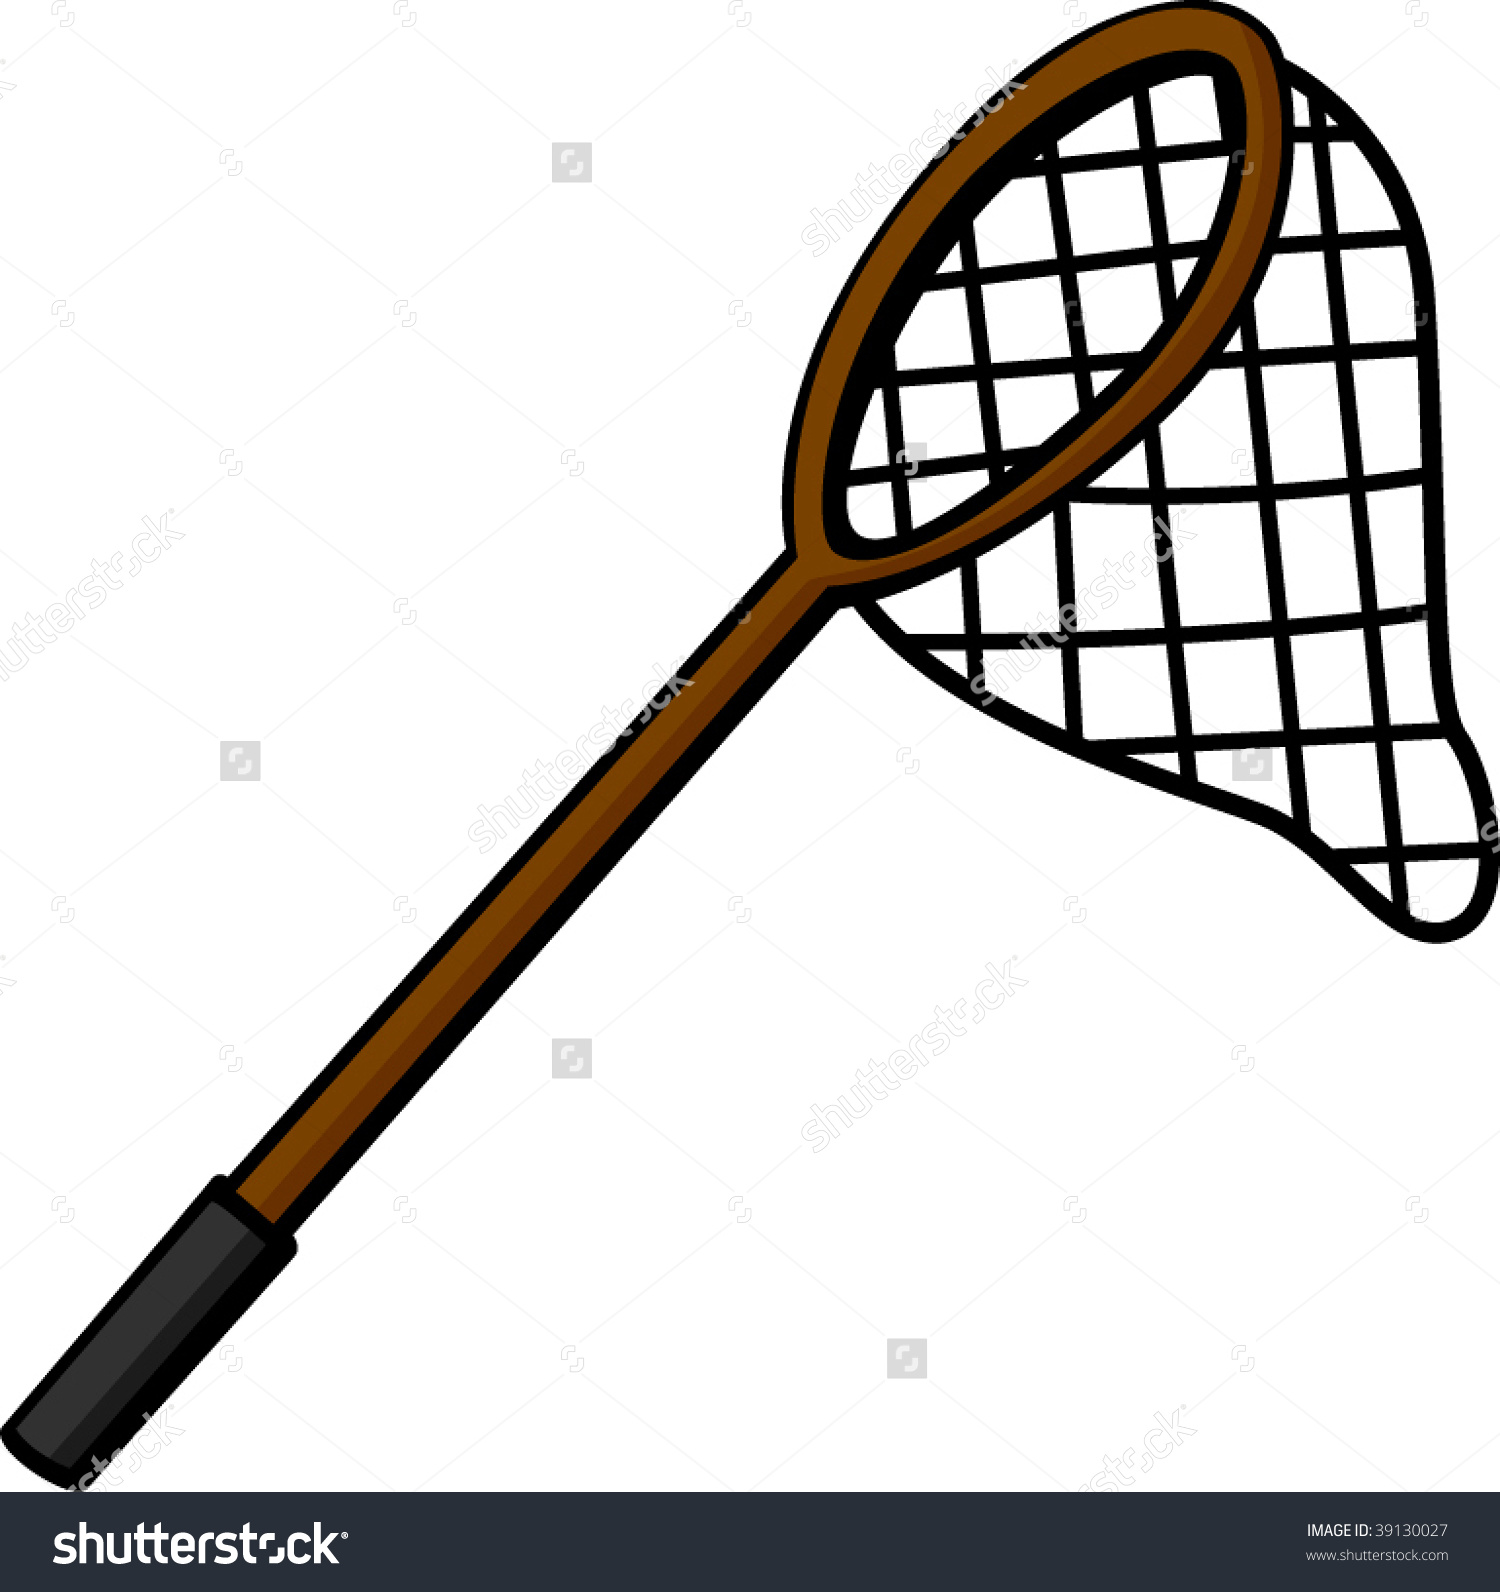 net clipart stock vector fishing net retro clipart illustration.